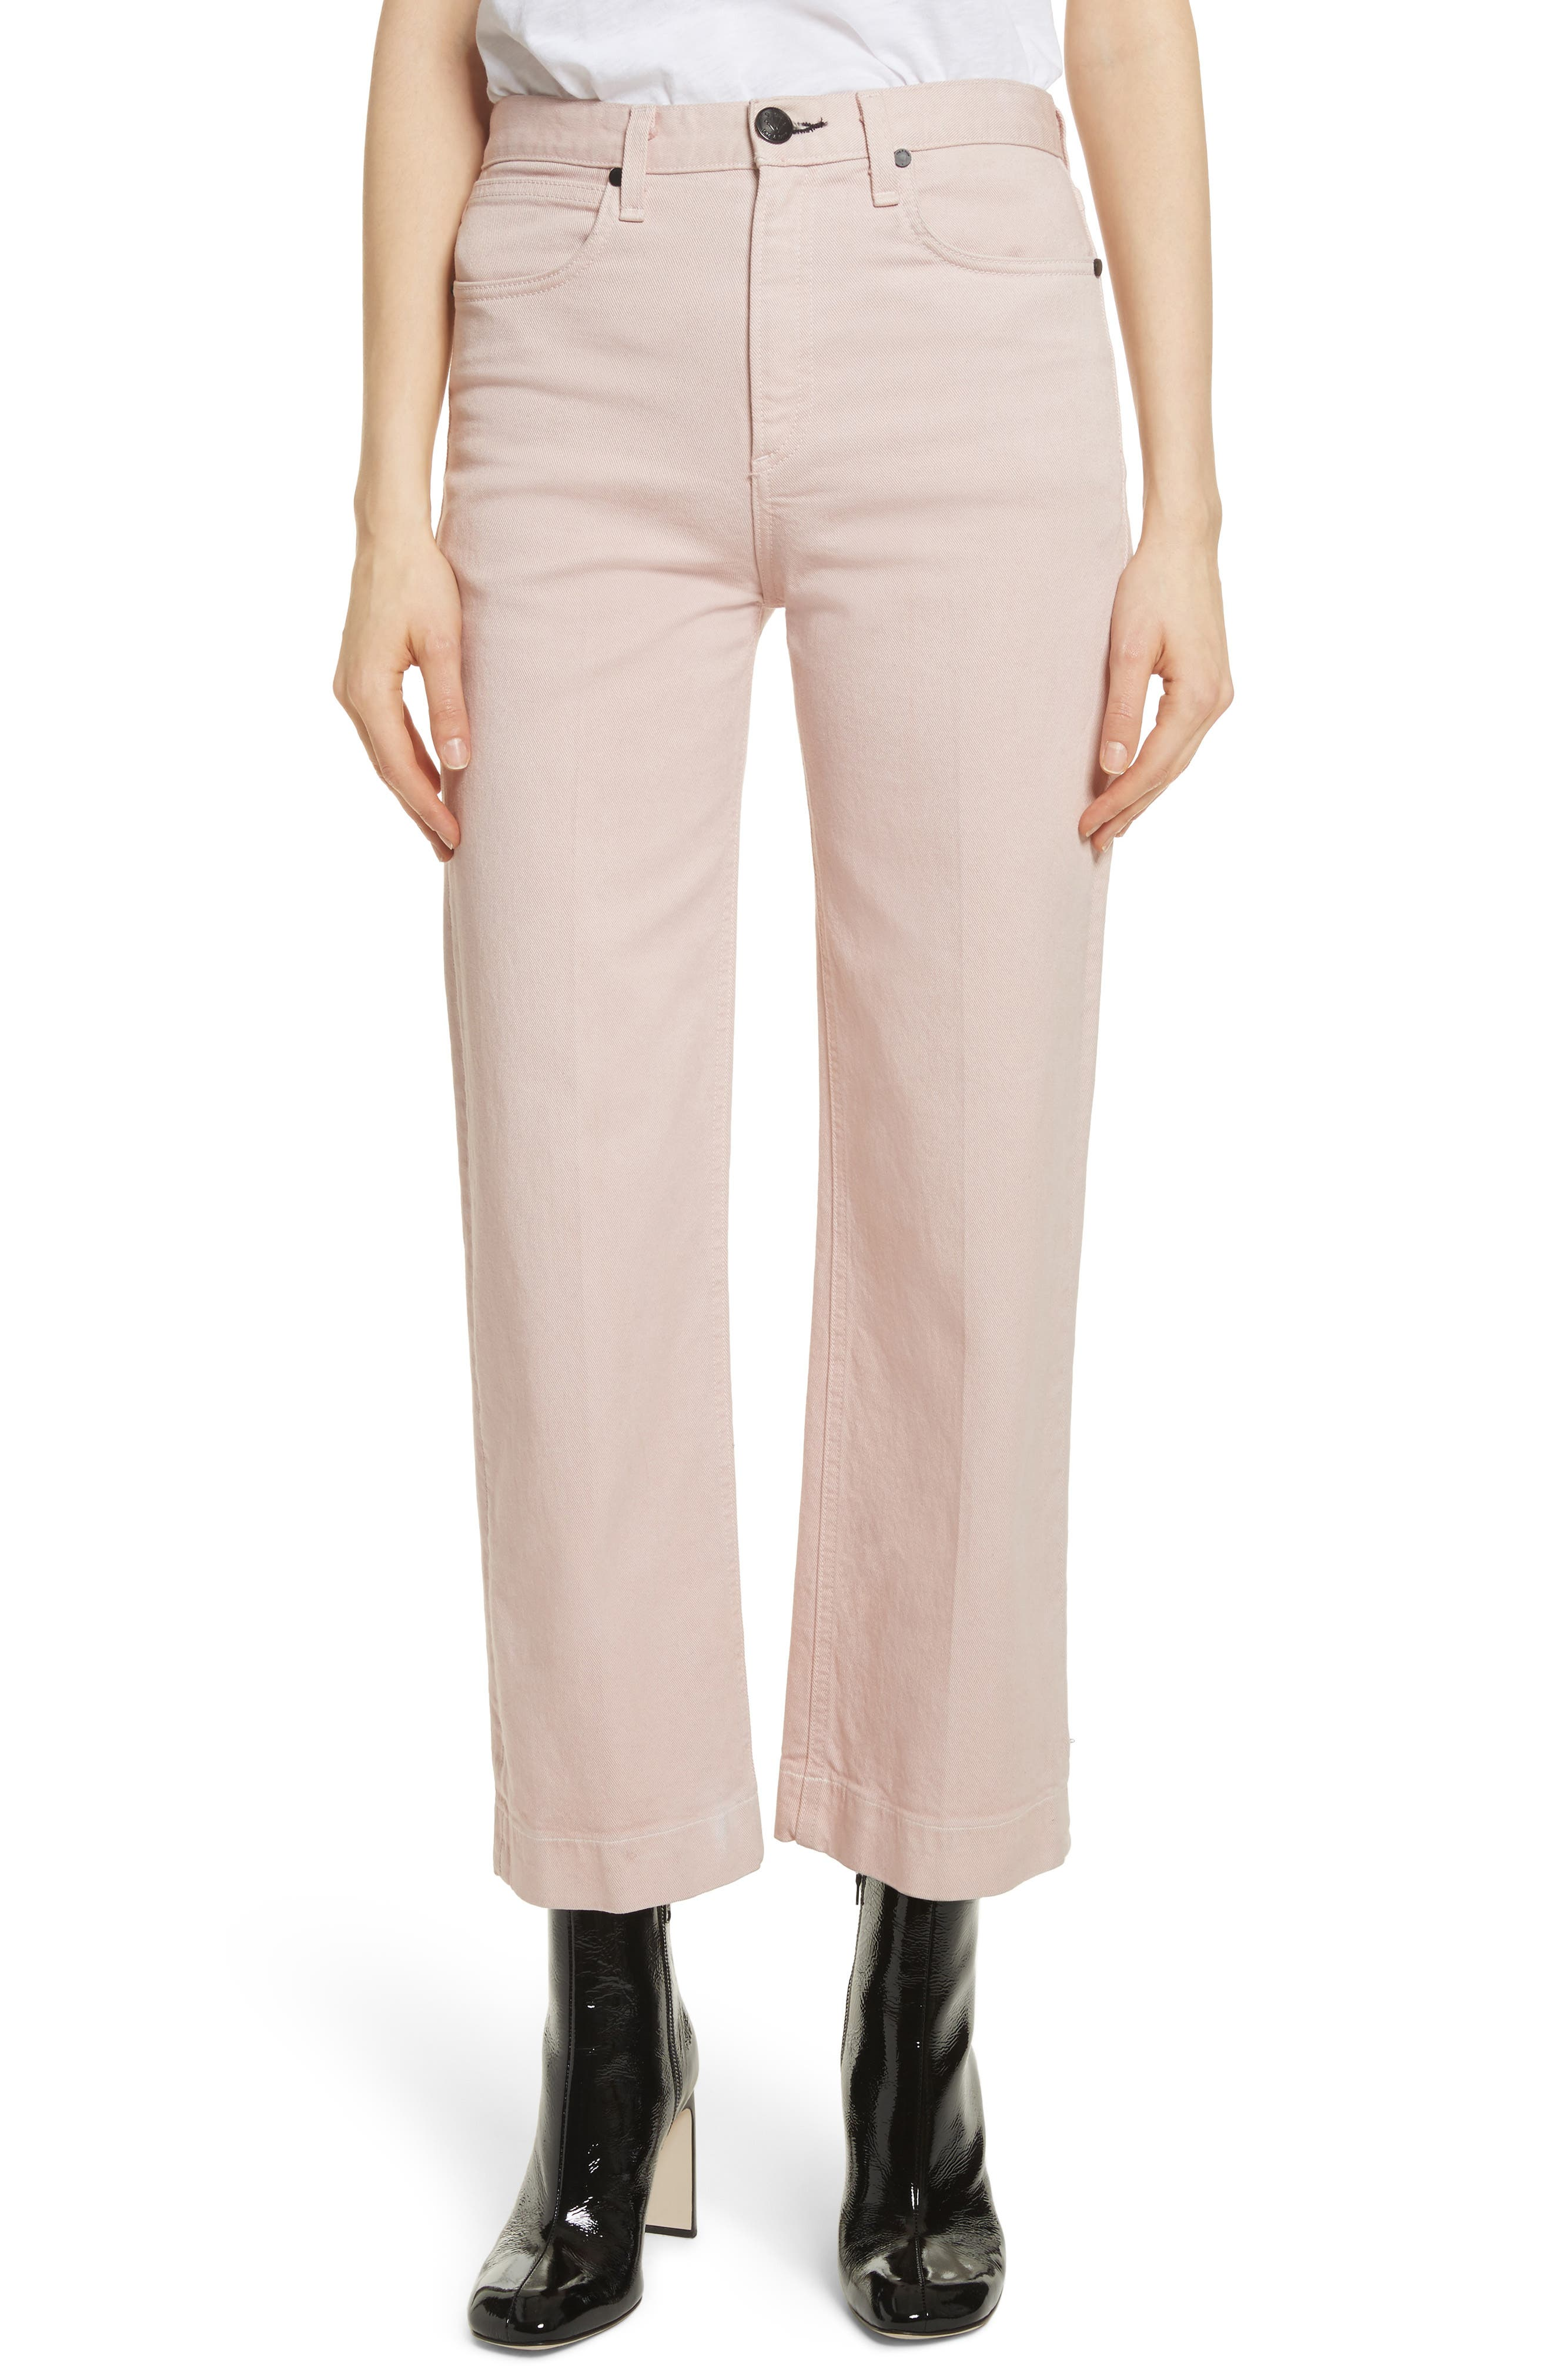 Justine High Waist Trouser Jeans,                         Main,                         color, Blush Twill